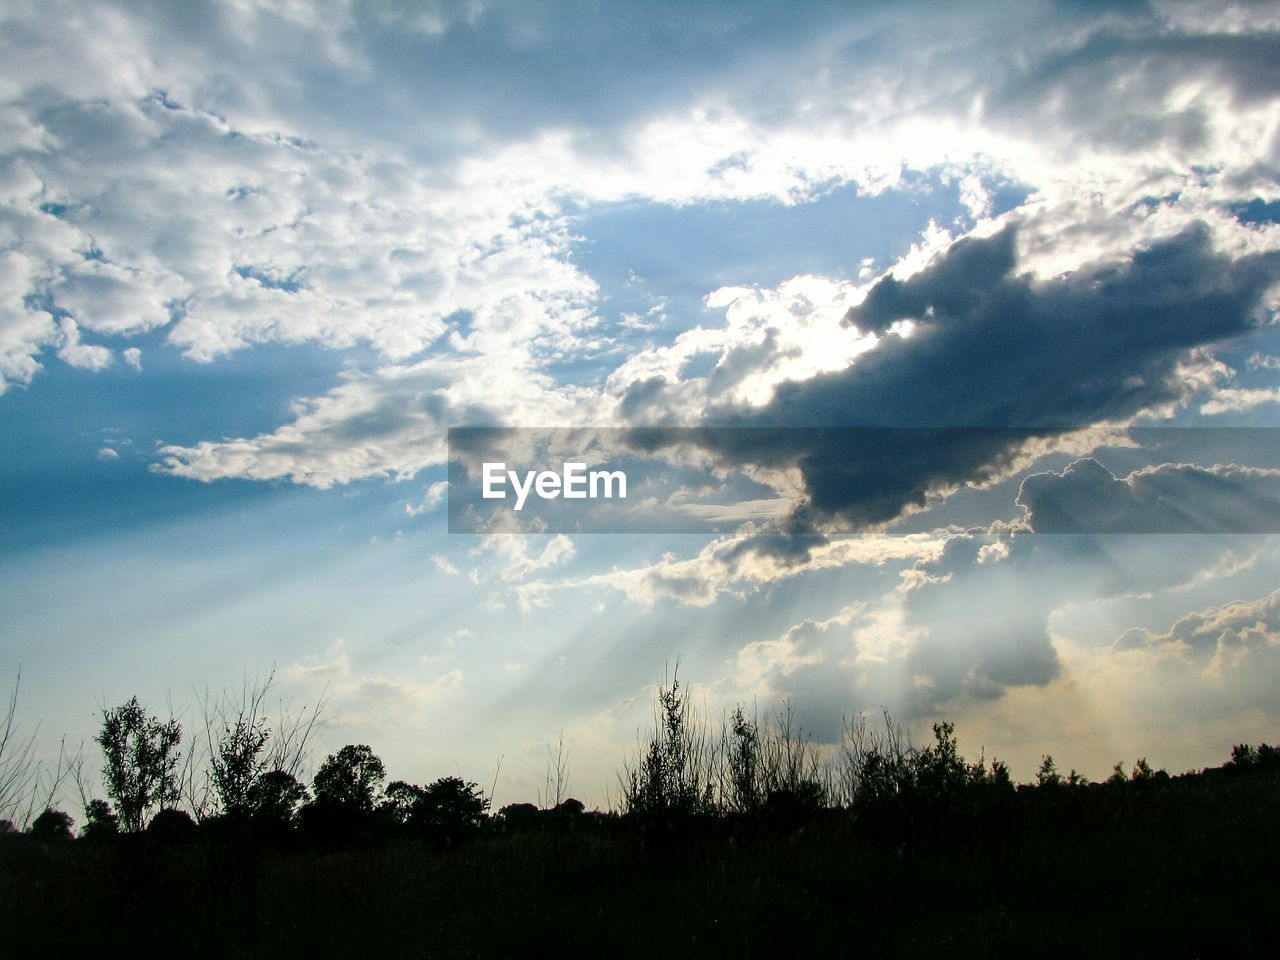 sky, cloud - sky, beauty in nature, tranquility, tranquil scene, scenics - nature, tree, plant, nature, no people, silhouette, landscape, land, environment, non-urban scene, outdoors, sunlight, sunset, field, day